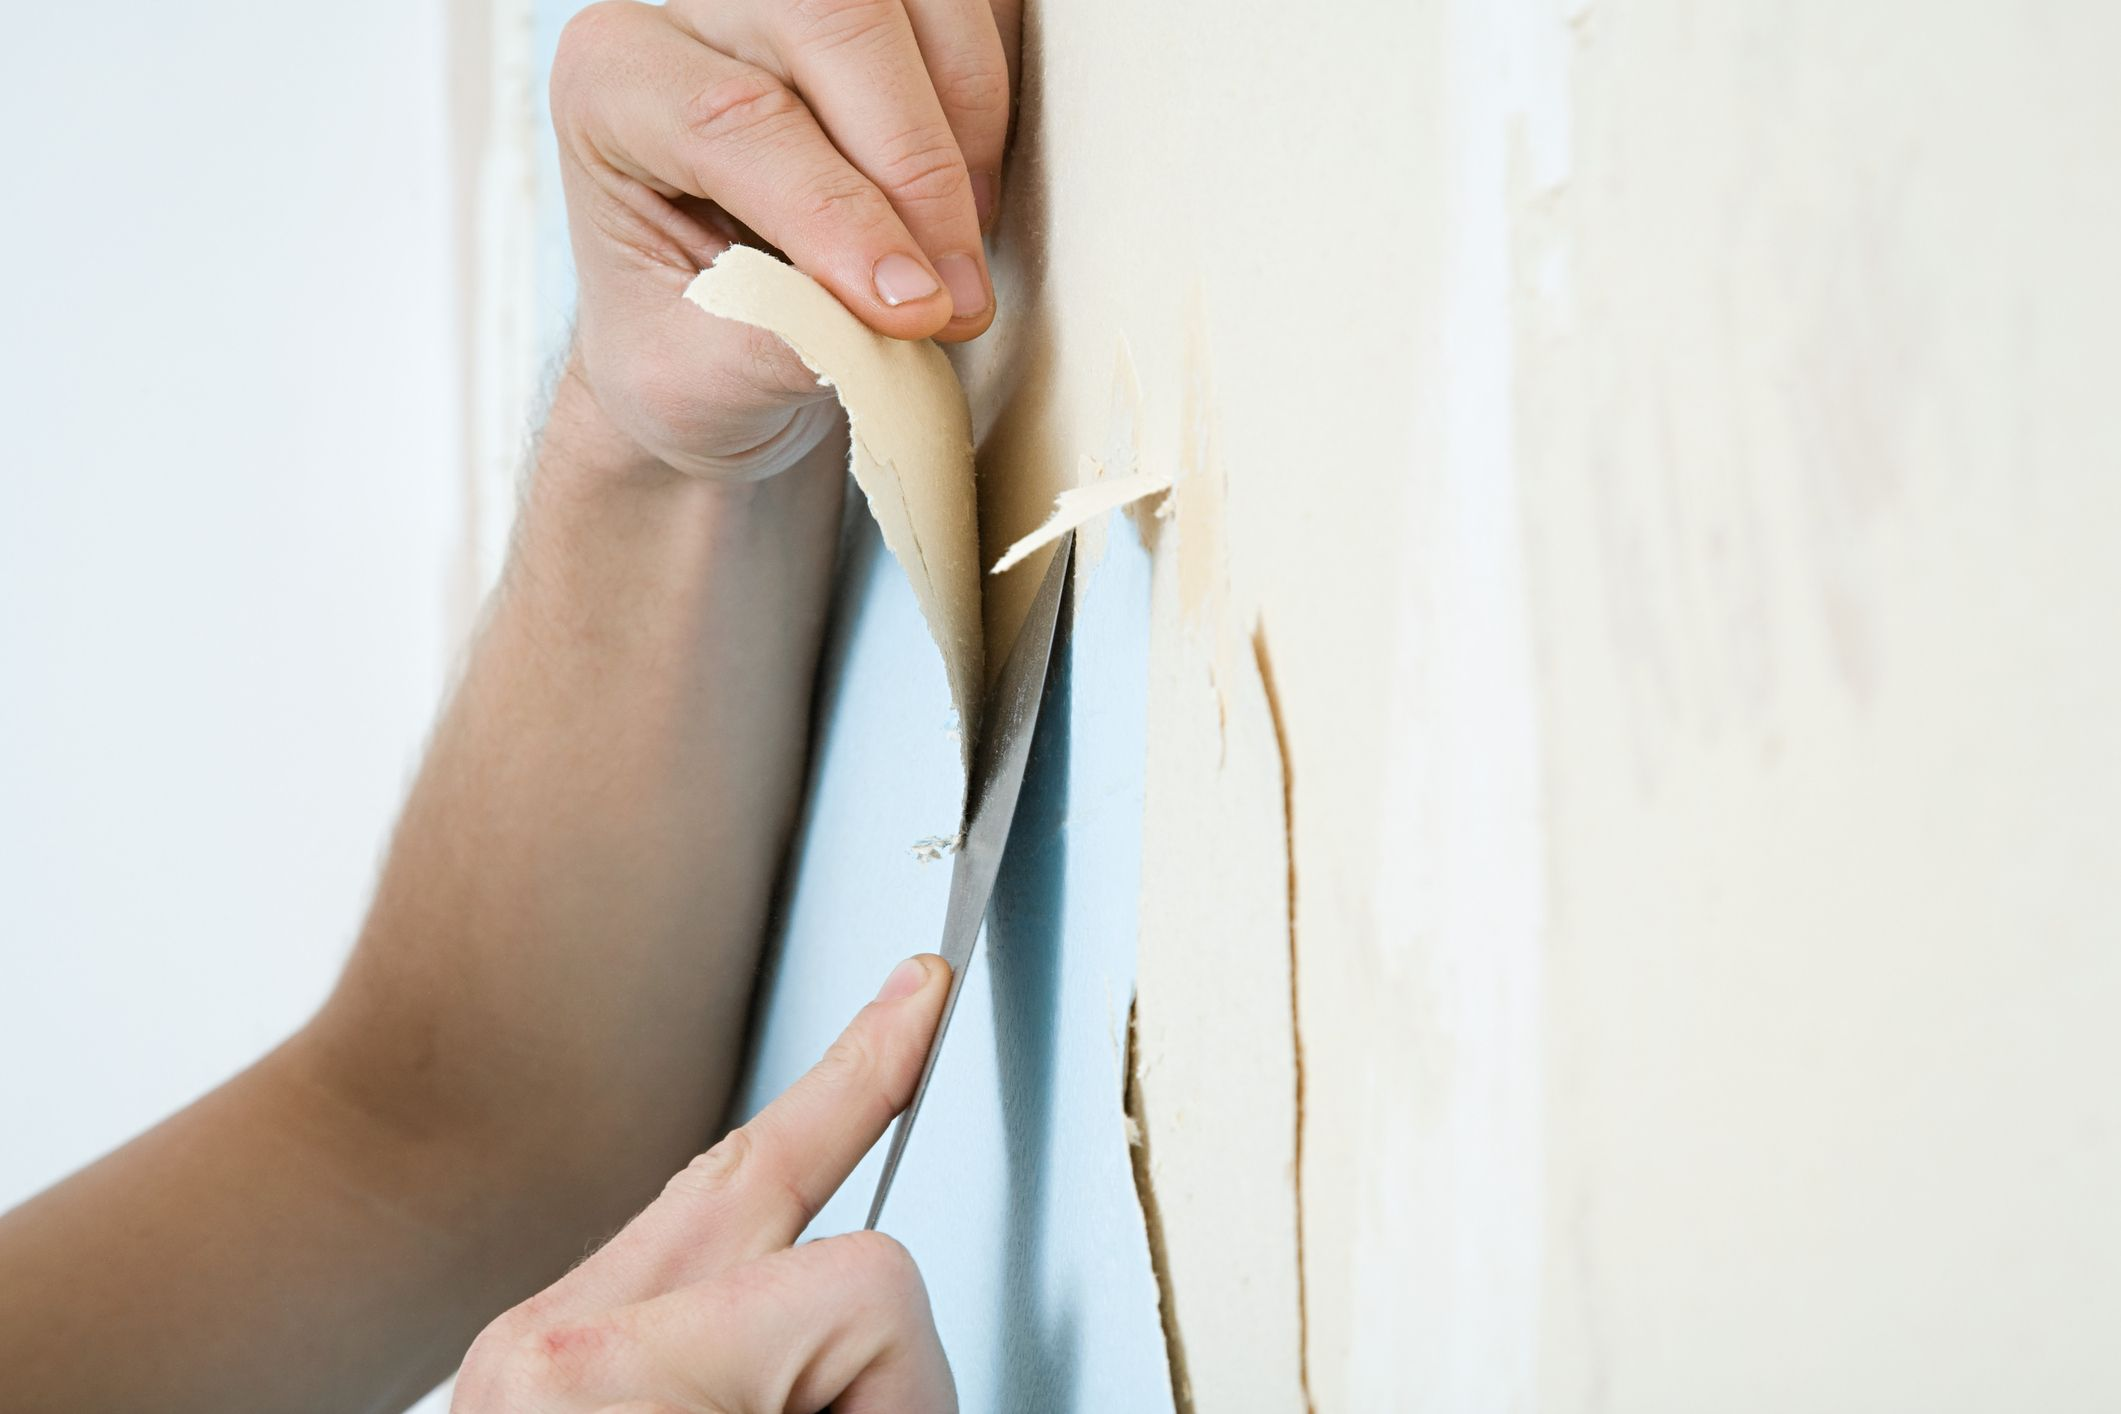 How to Remove Wallpaper Easily - Best